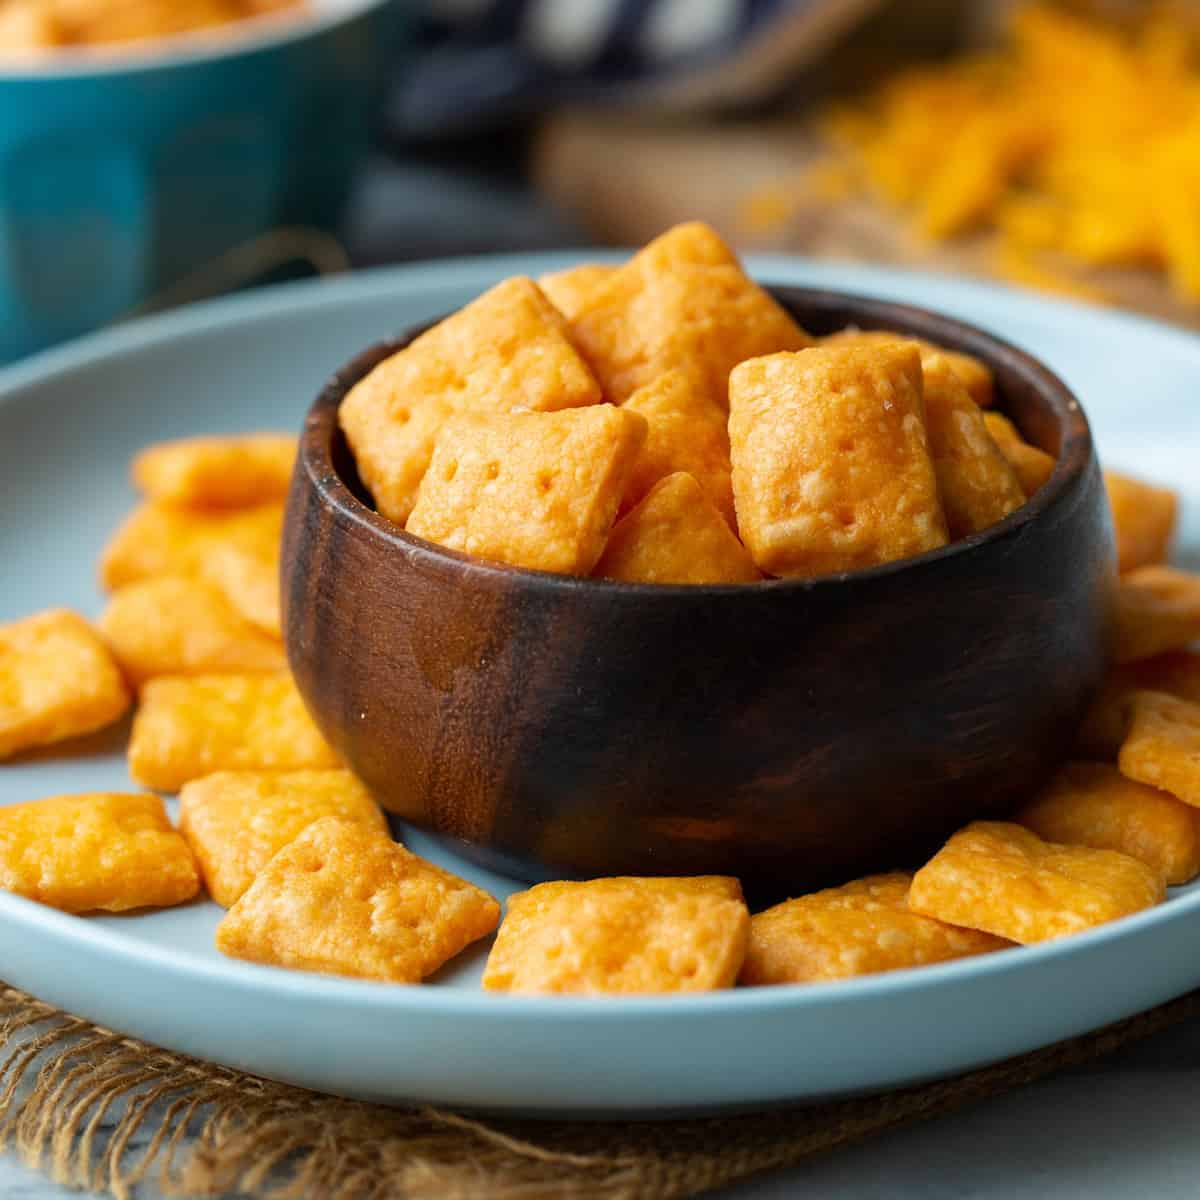 gluten Free Cheese Crackers in a small bowl